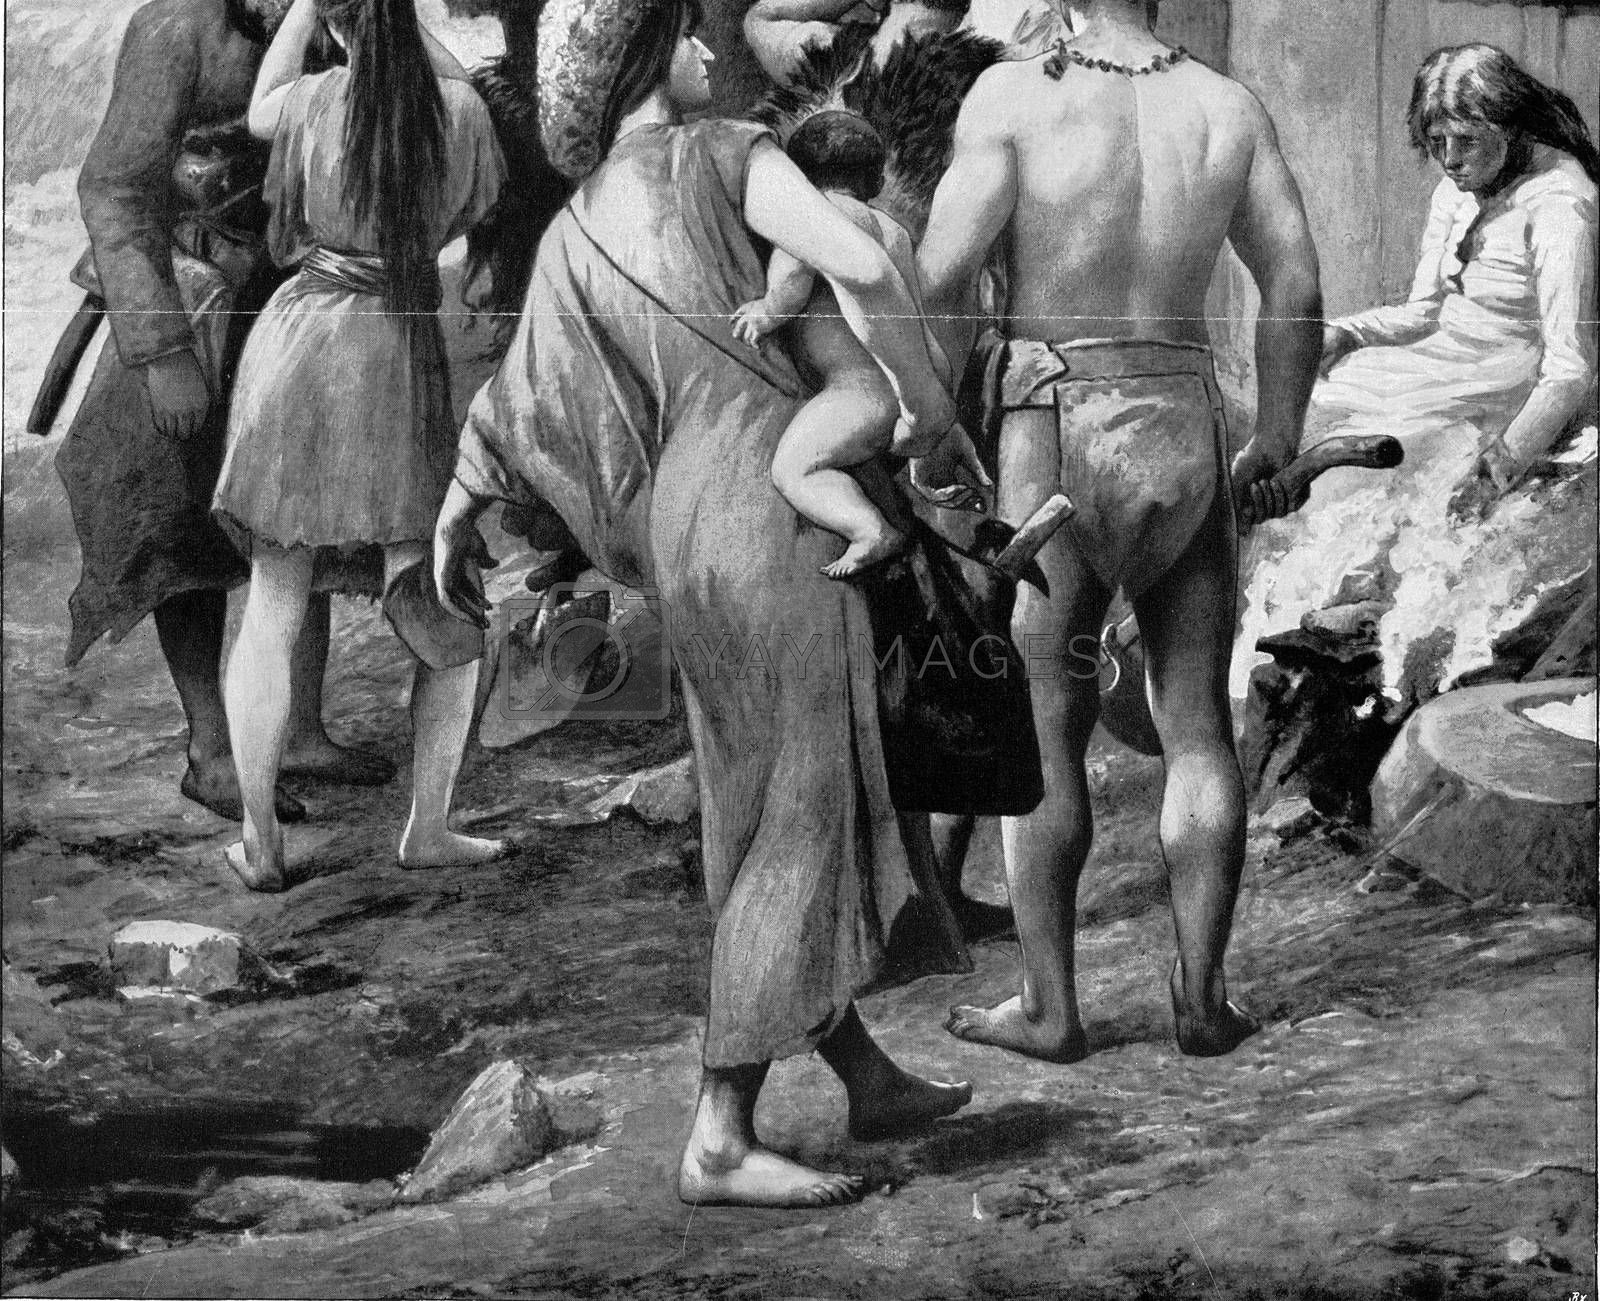 In the Bronze Age, vintage engraved illustration. From the Universe and Humanity, 1910.